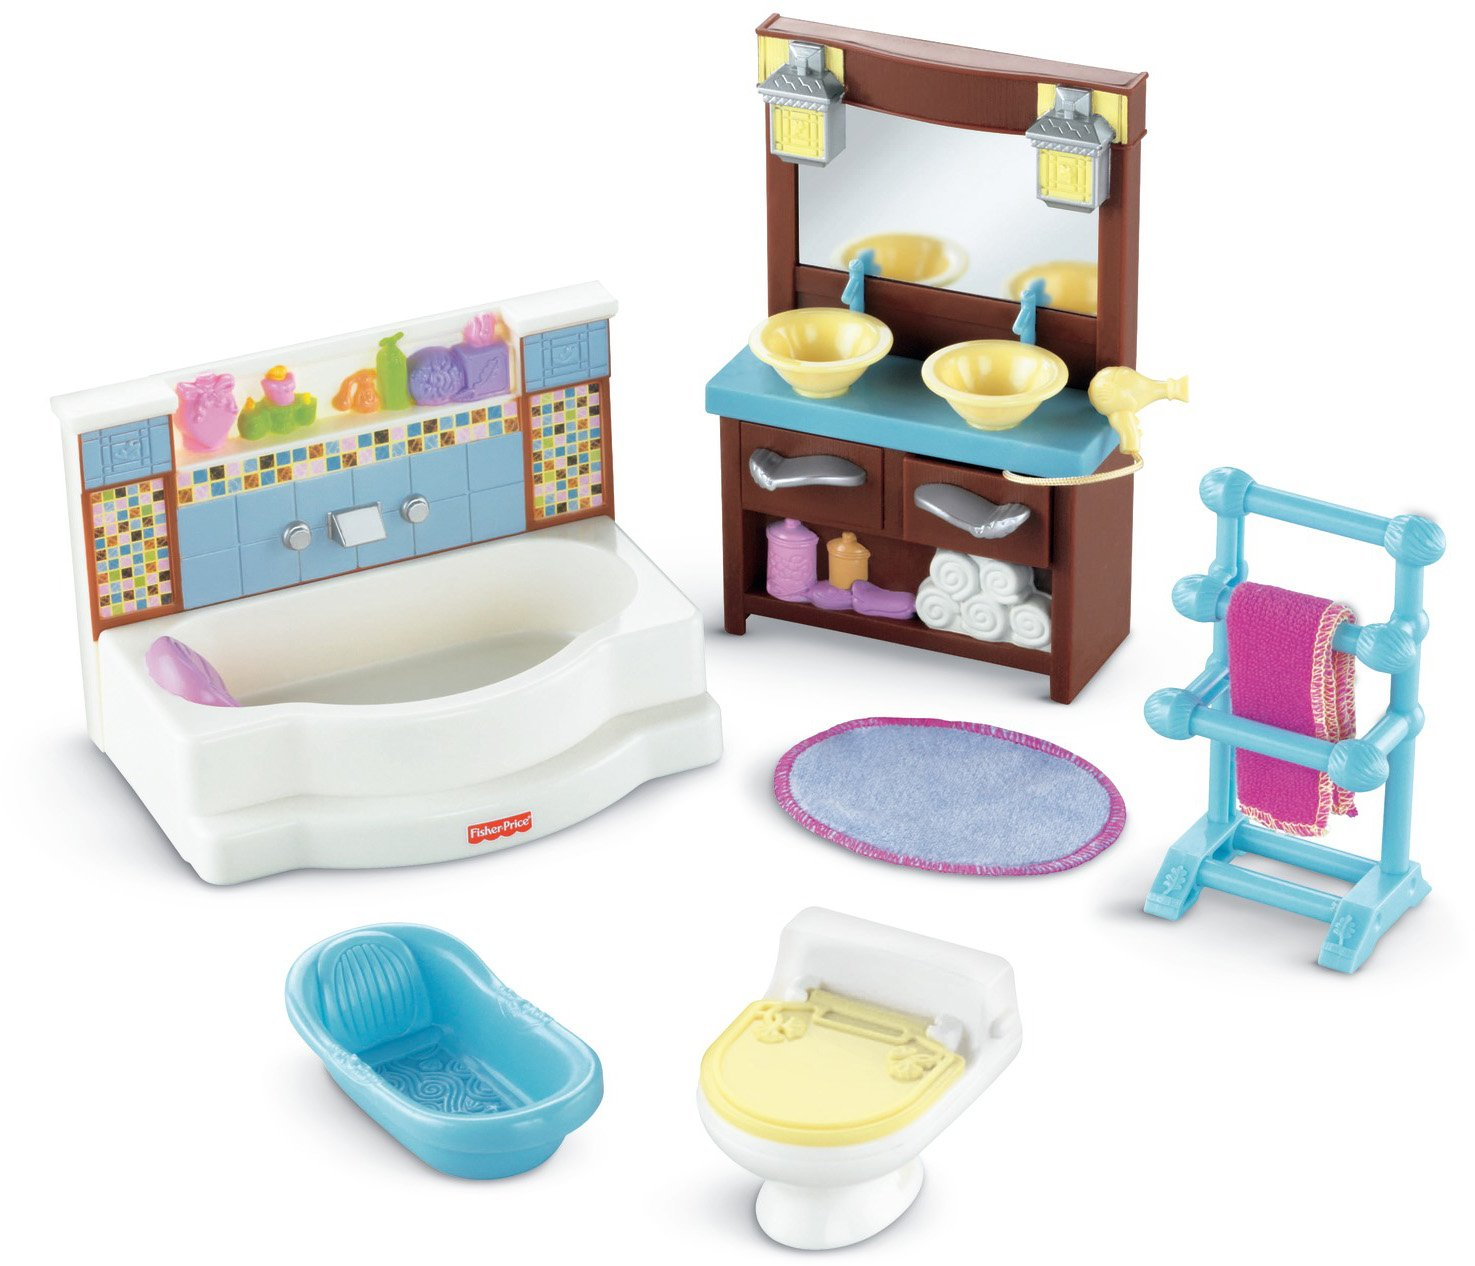 Amazon.com: Fisher-Price Loving Family, Bathroom: Toys & Games